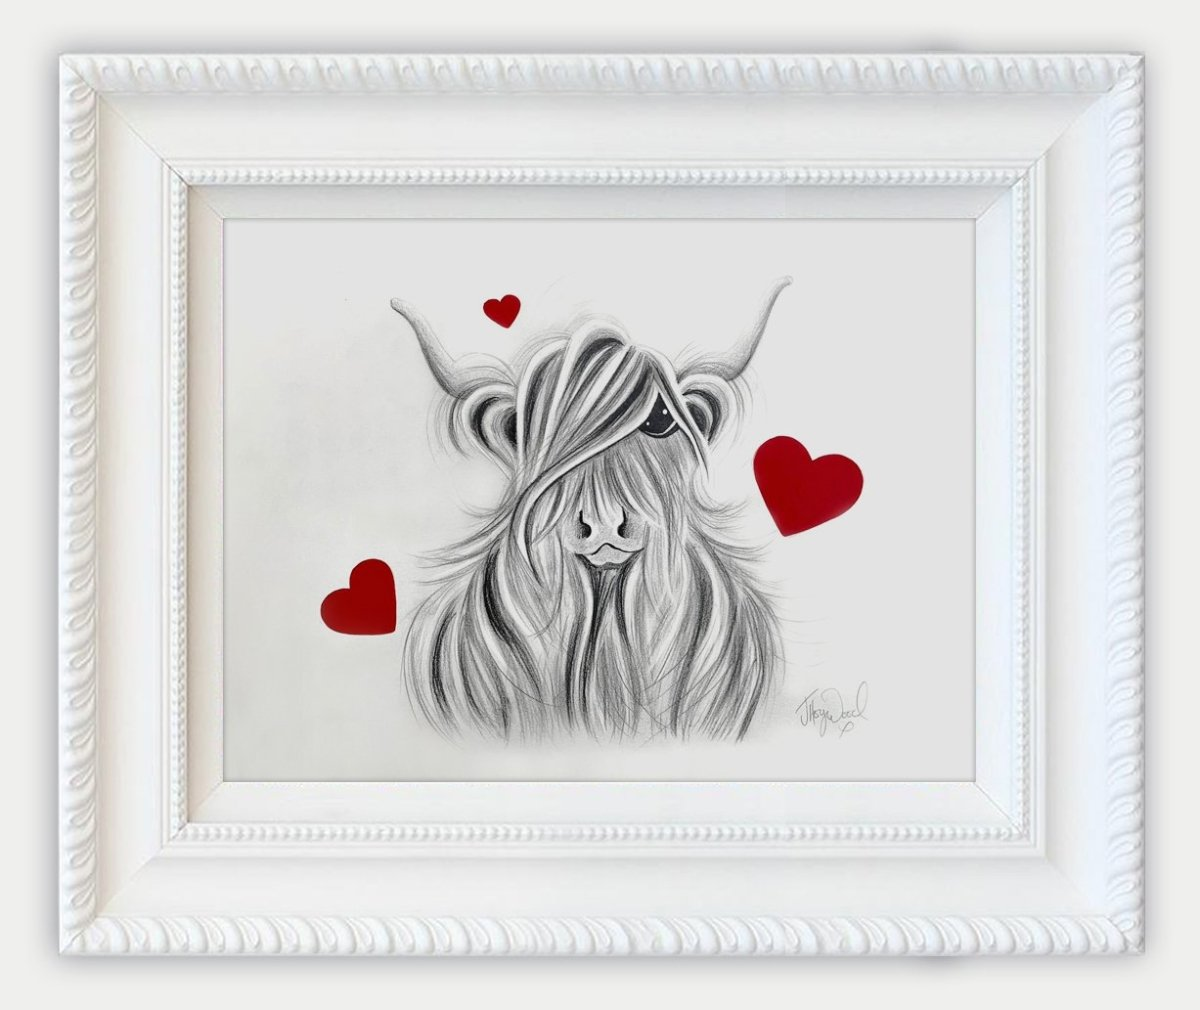 McValentine Drawing - Jennifer Hogwood